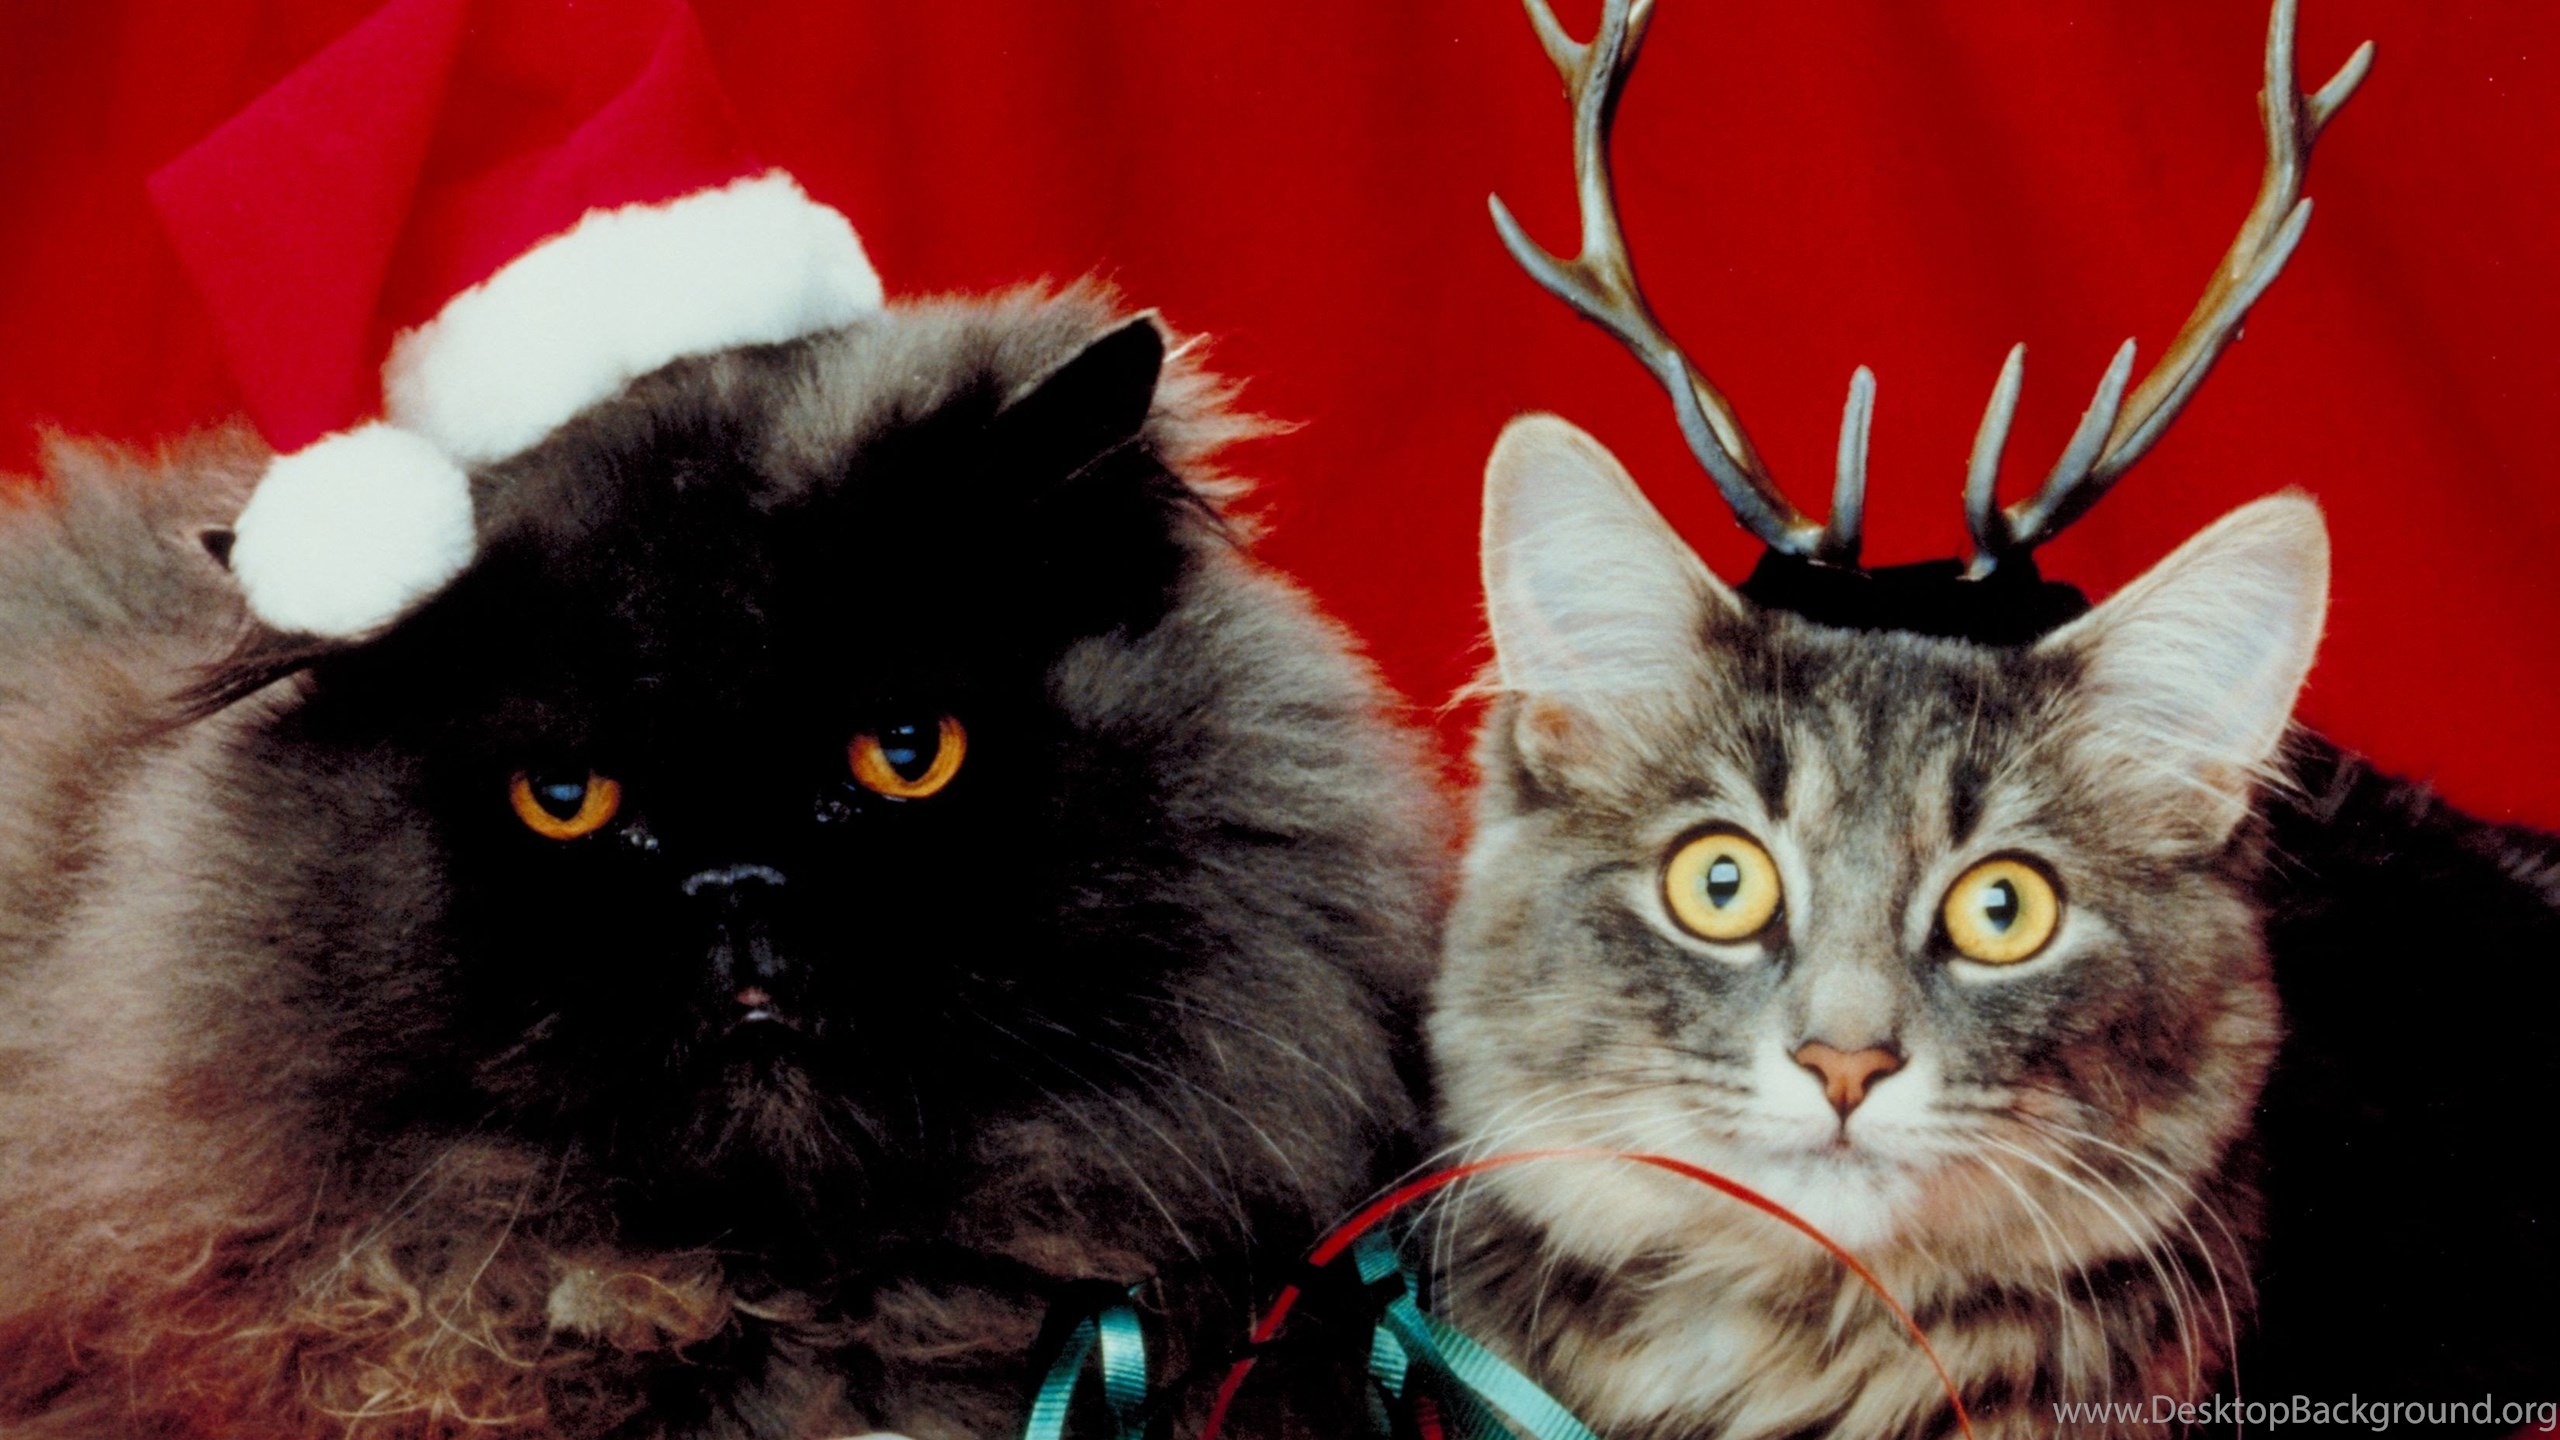 Funny Christmas Cat 1920x1080px Desktop Background